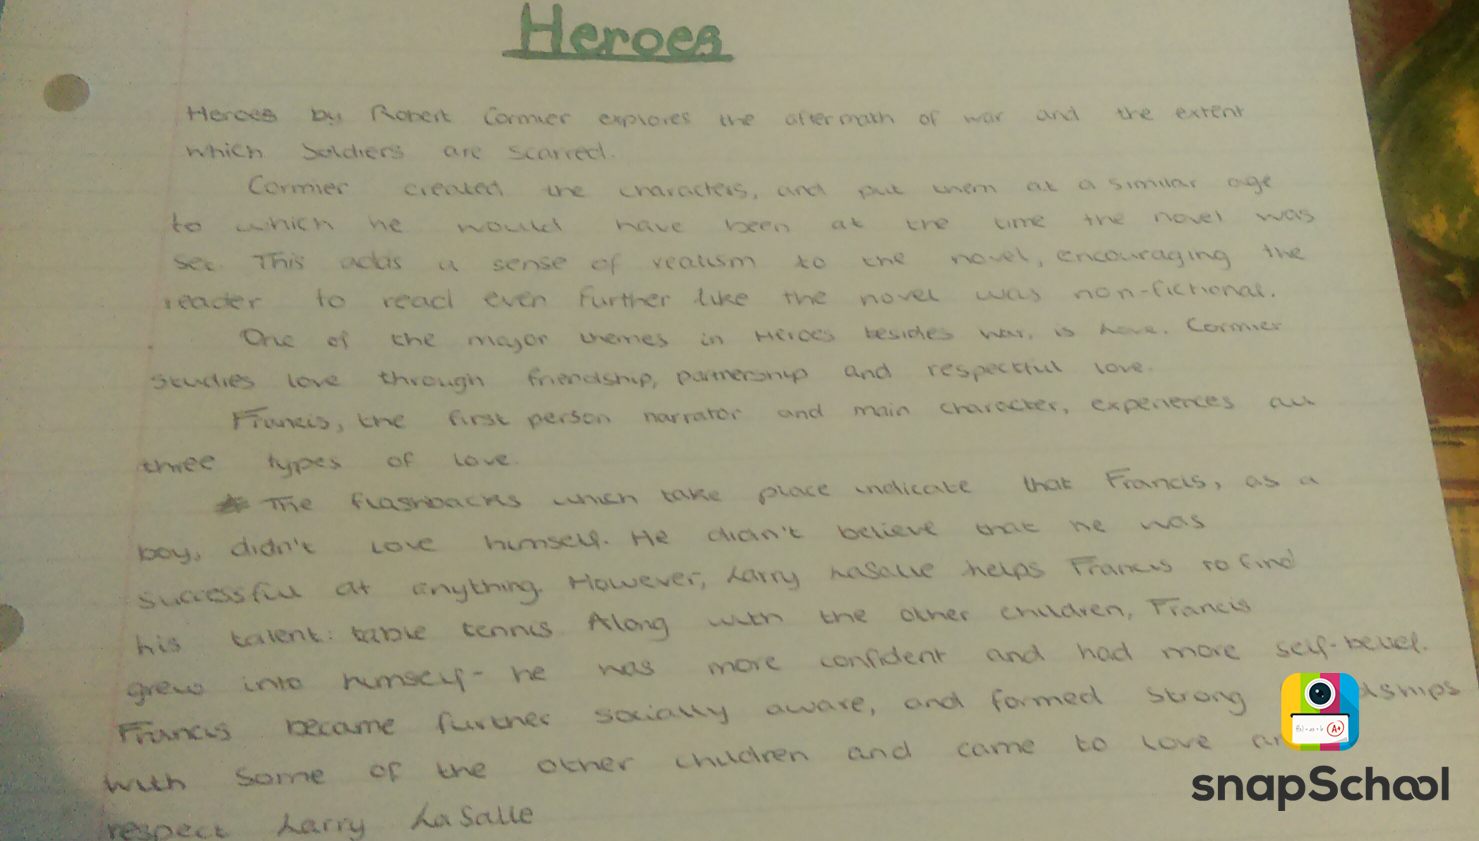 heroes by robert cormier short Heroes - robert cormier contents heroes is one of the choices of prose texts in the gcse english literature paper for aqa specification a heroes is only a short novel read it once all the way through, and then read it again more slowly.